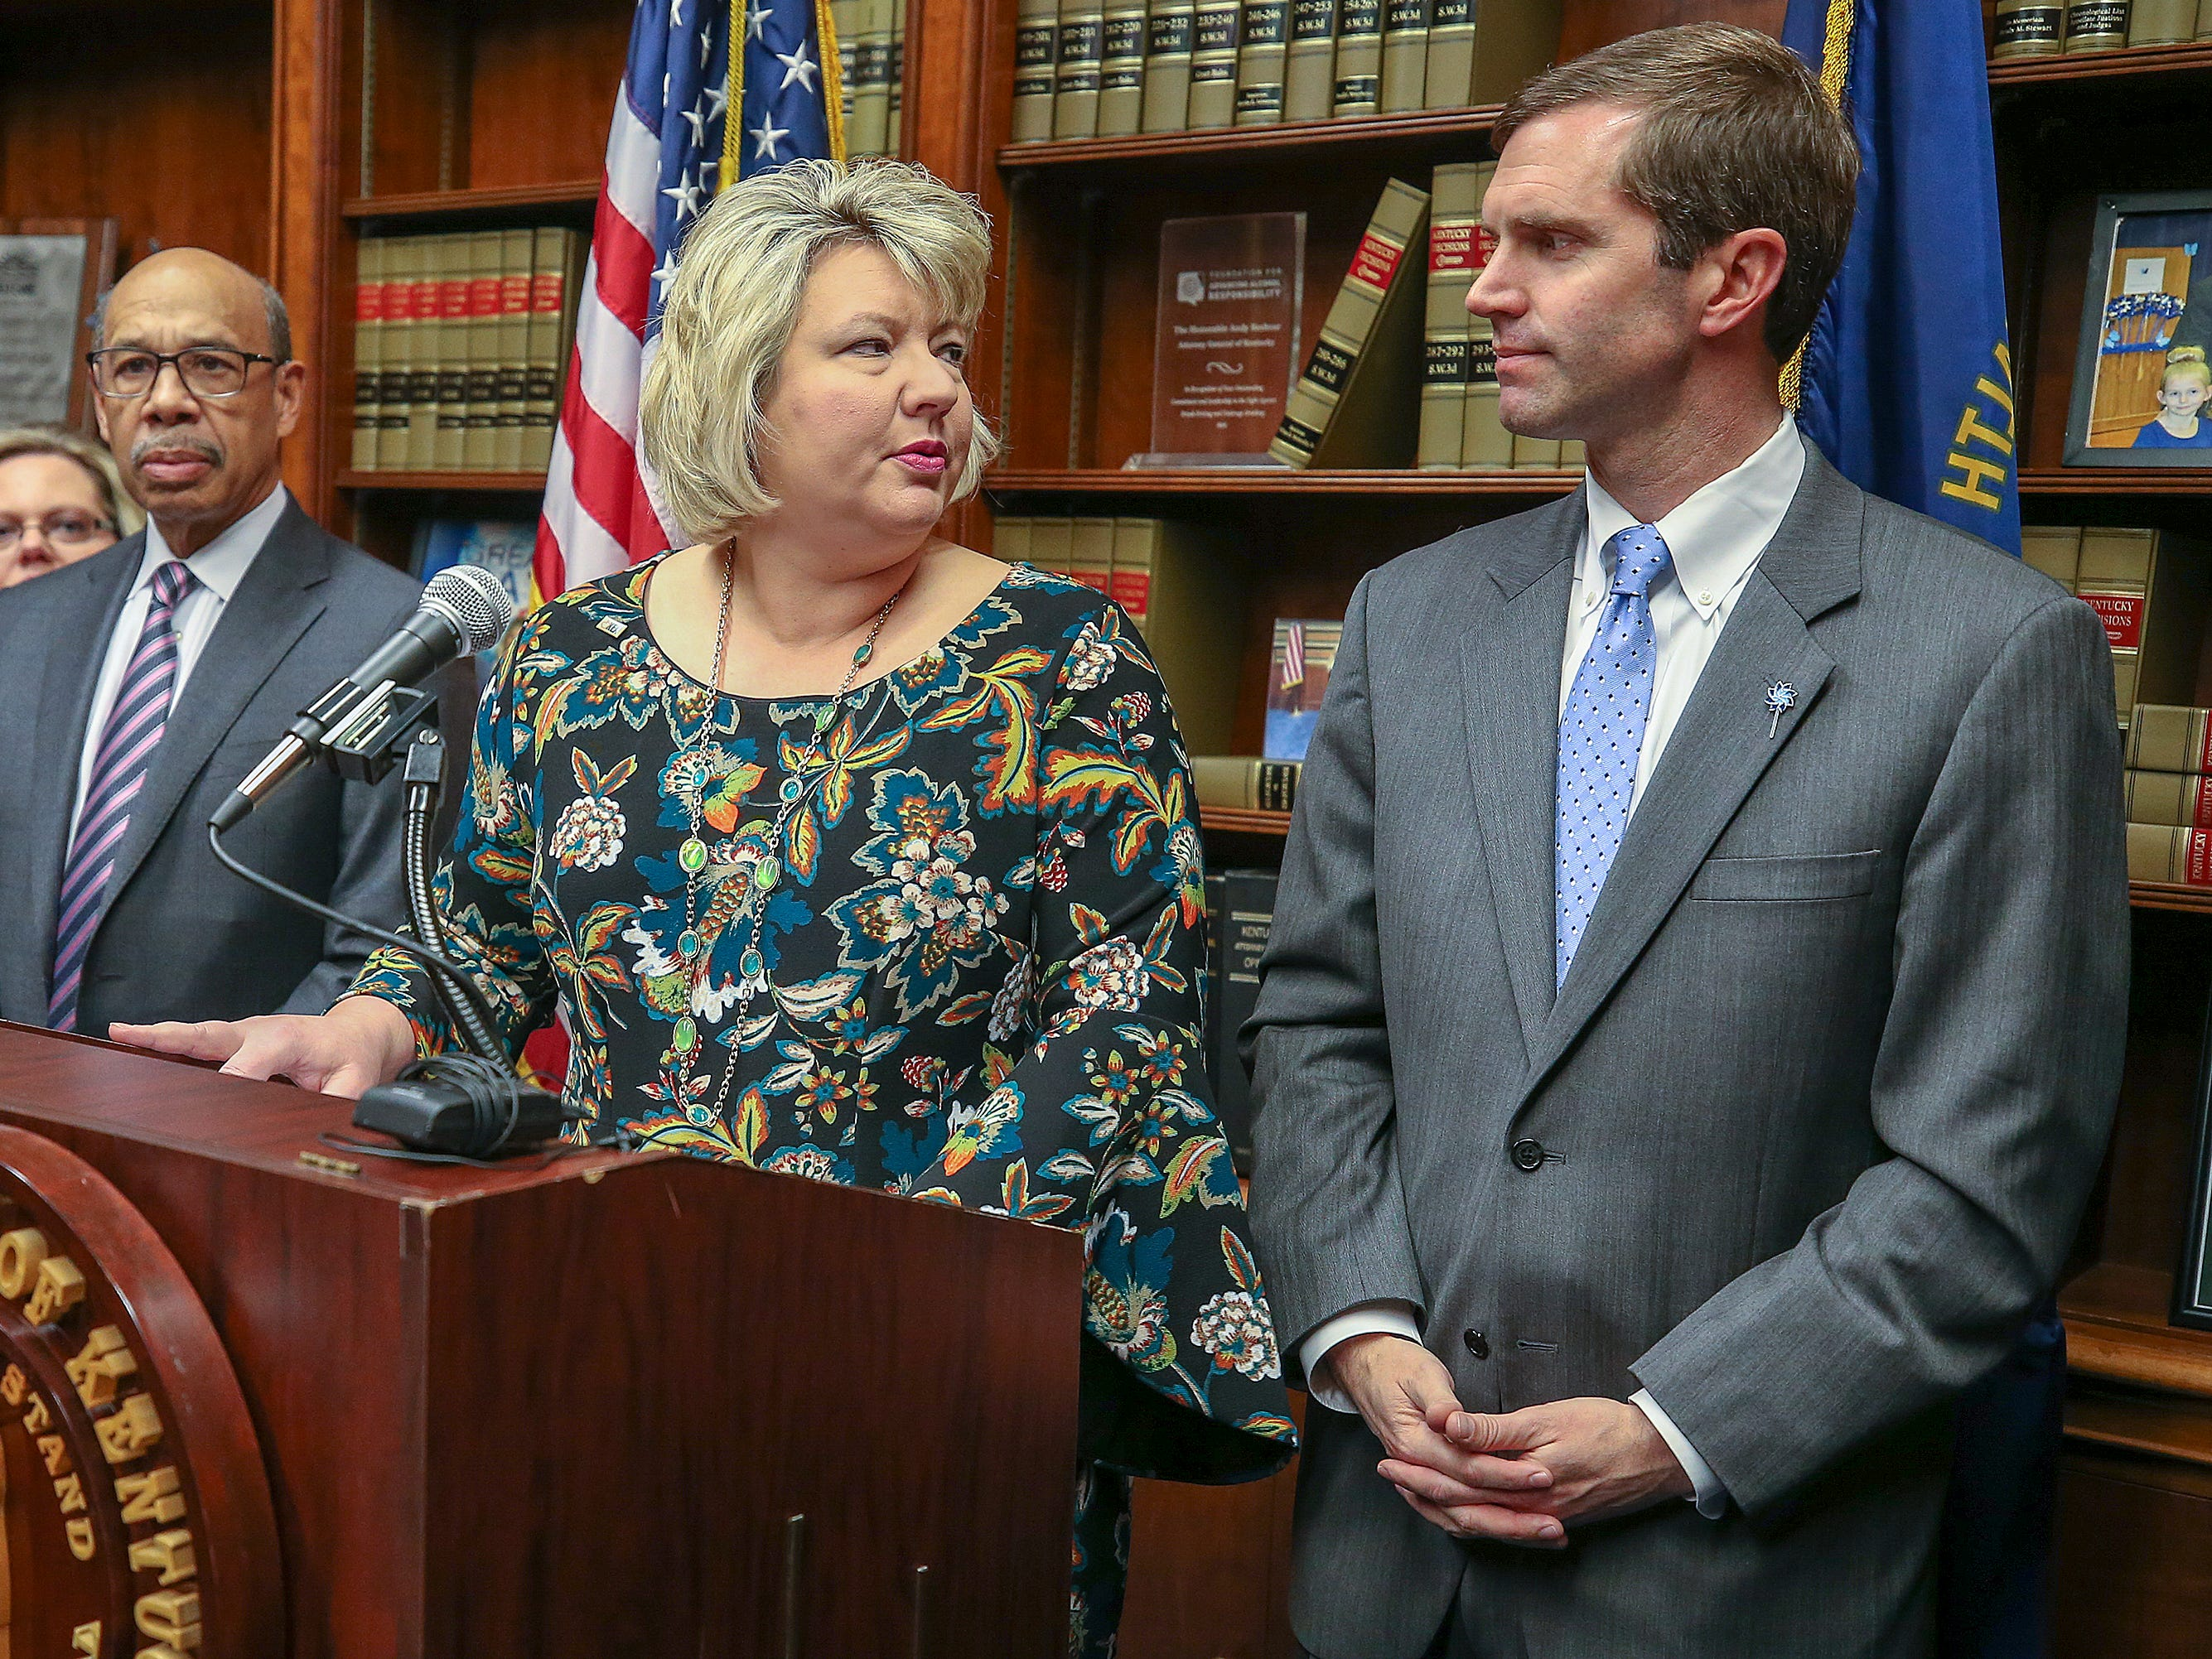 Stephanie Winkler, current president of KEA, speaks during a press conference with Kentucky Attorney General Andy Beshear after a Kentucky Supreme Court ruling that overturned Gov. Matt Bevin's pension reform bill. December 13, 2018